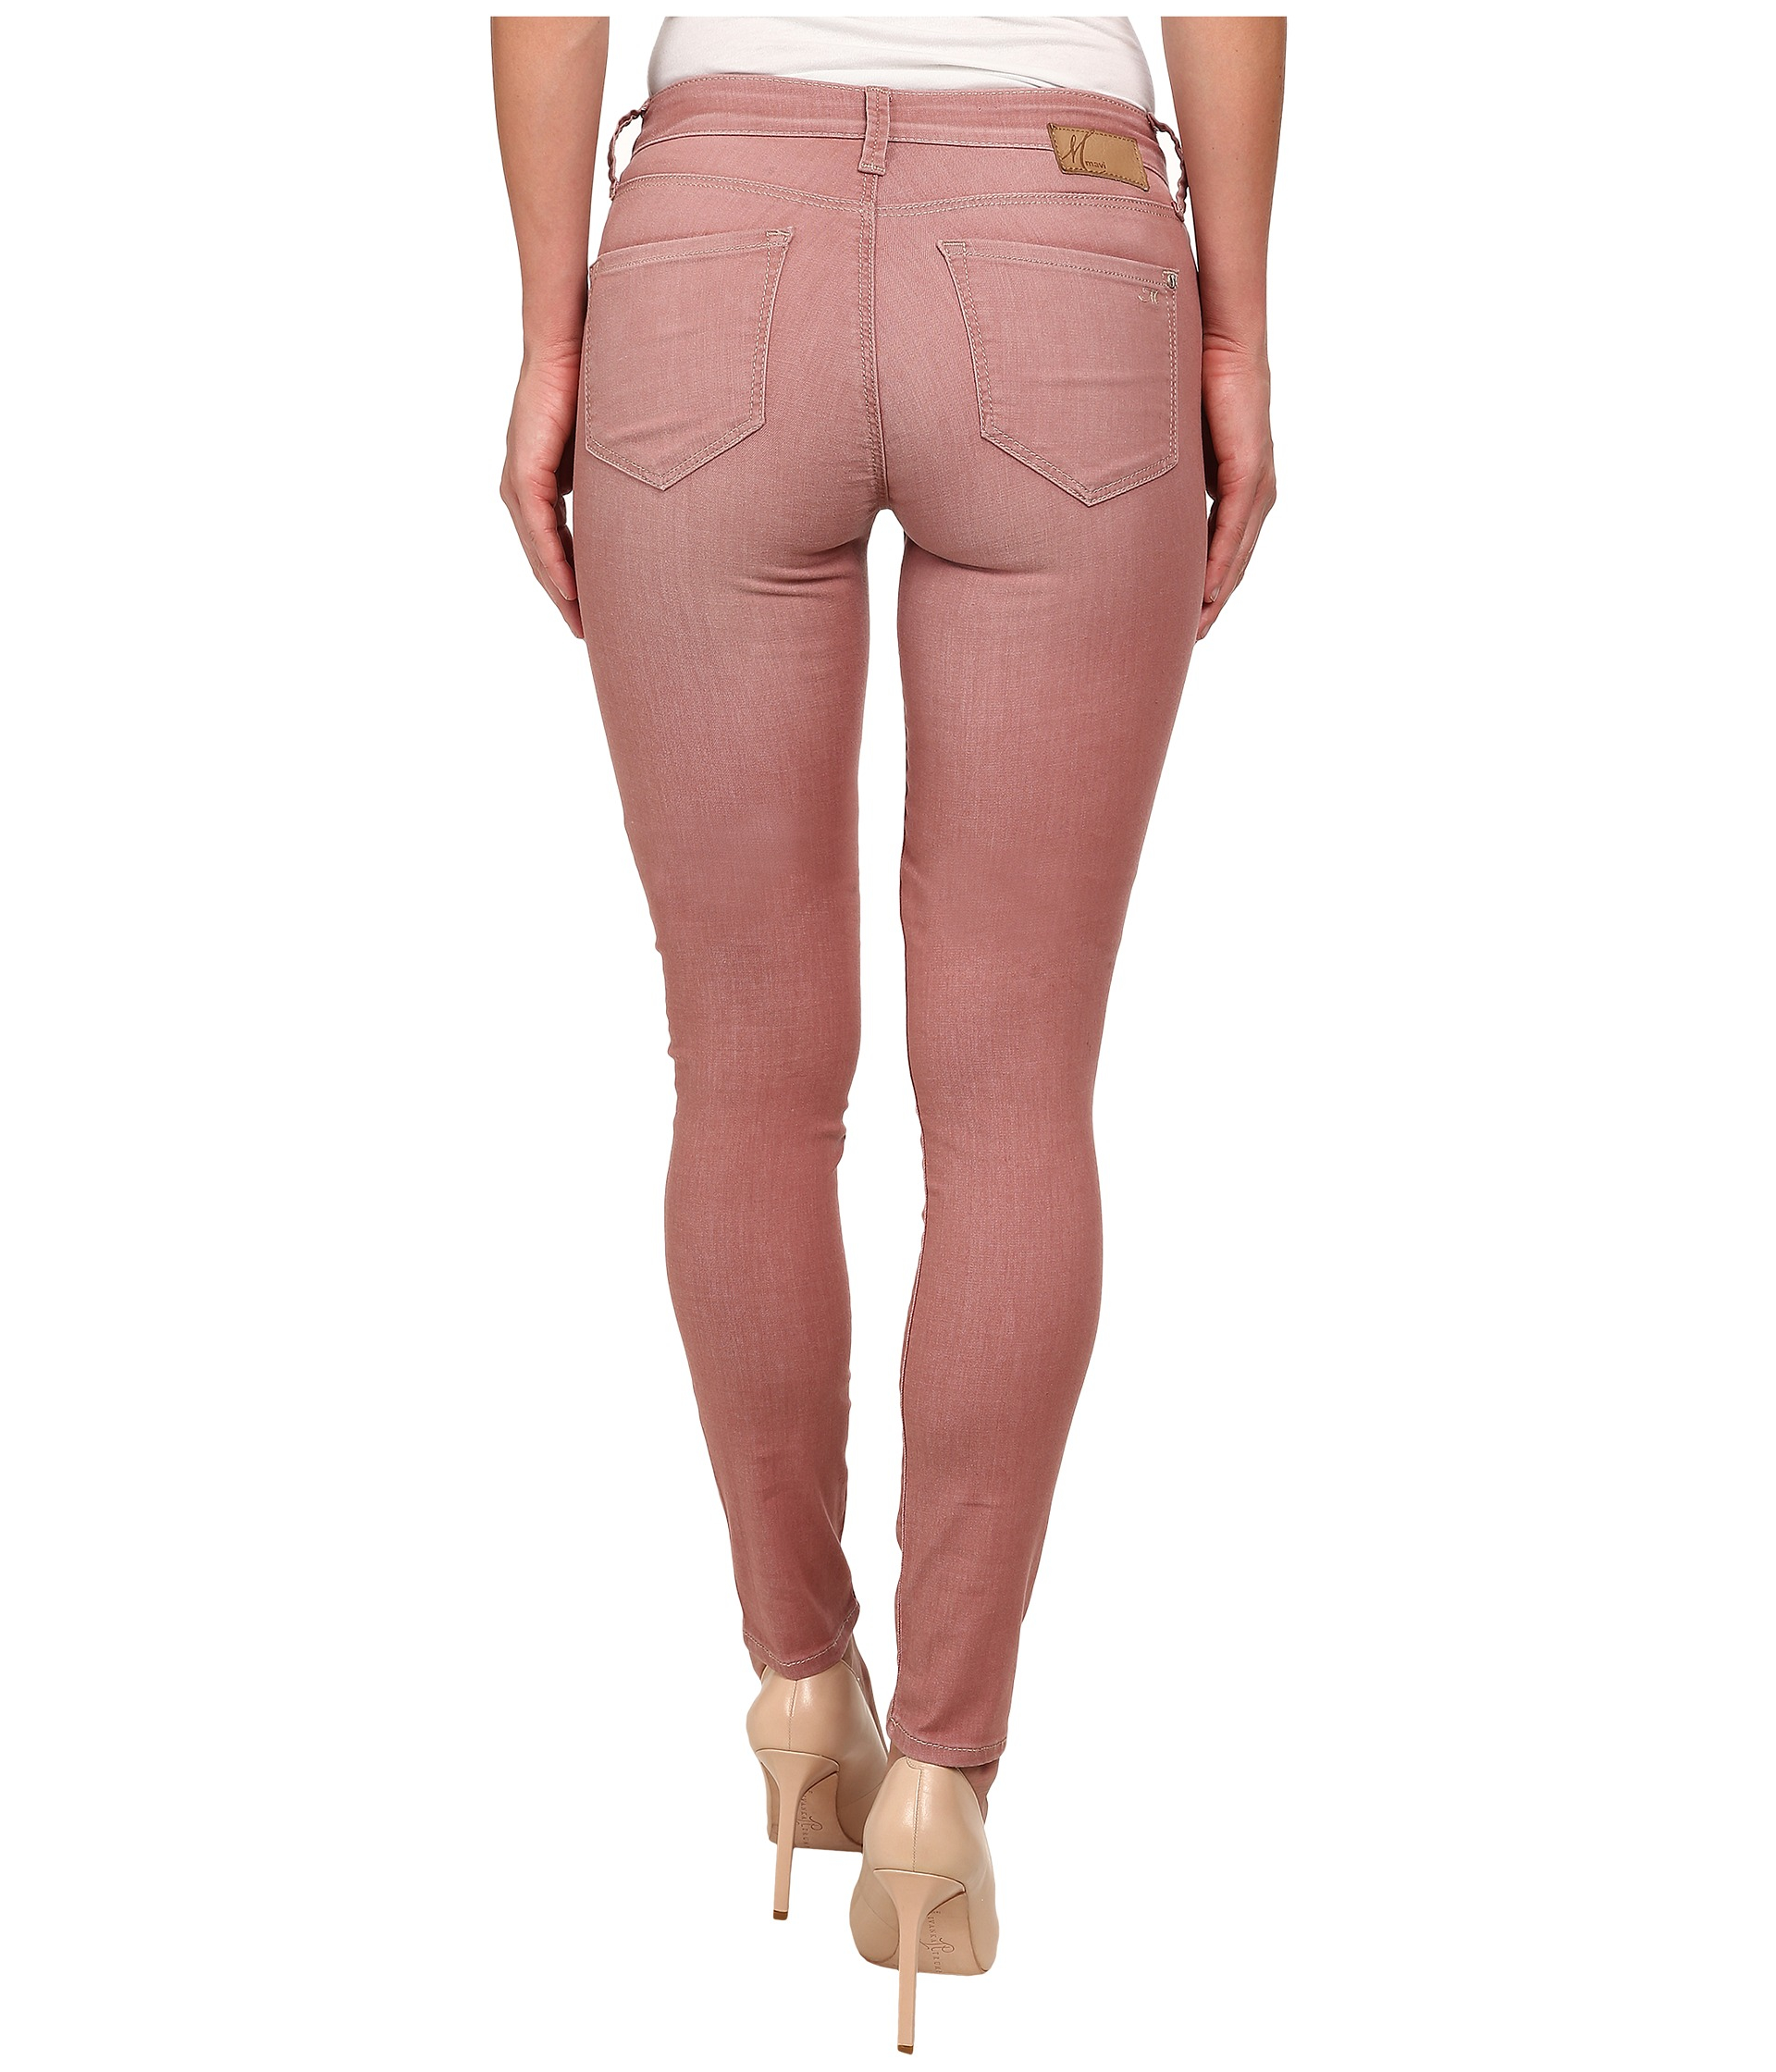 Mavi jeans Adriana Colored In Rose Vintage in Pink | Lyst